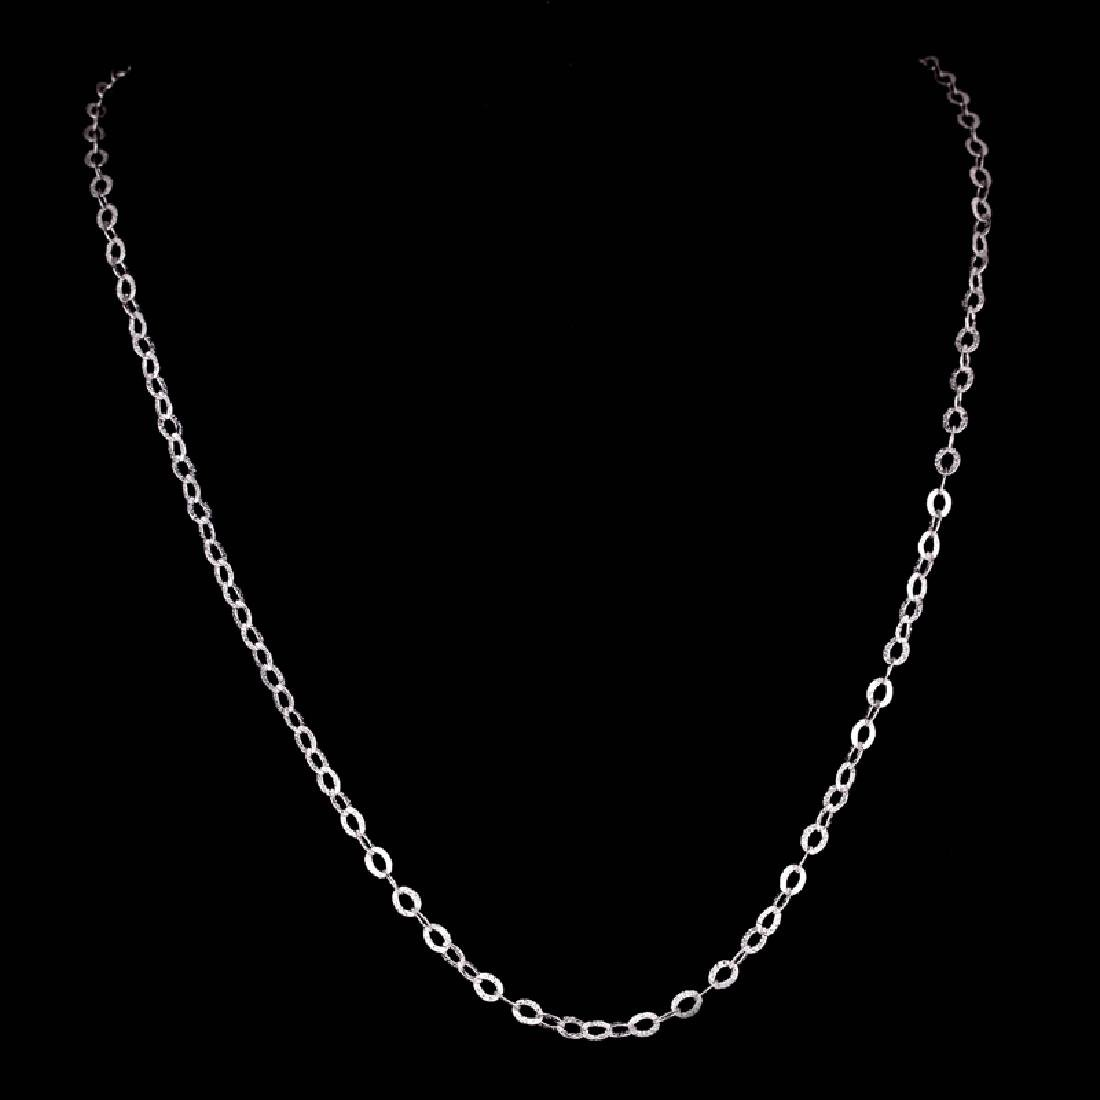 *Fine Jewelry 14KT White Gold, 3.3GR, 18'' Corrugated